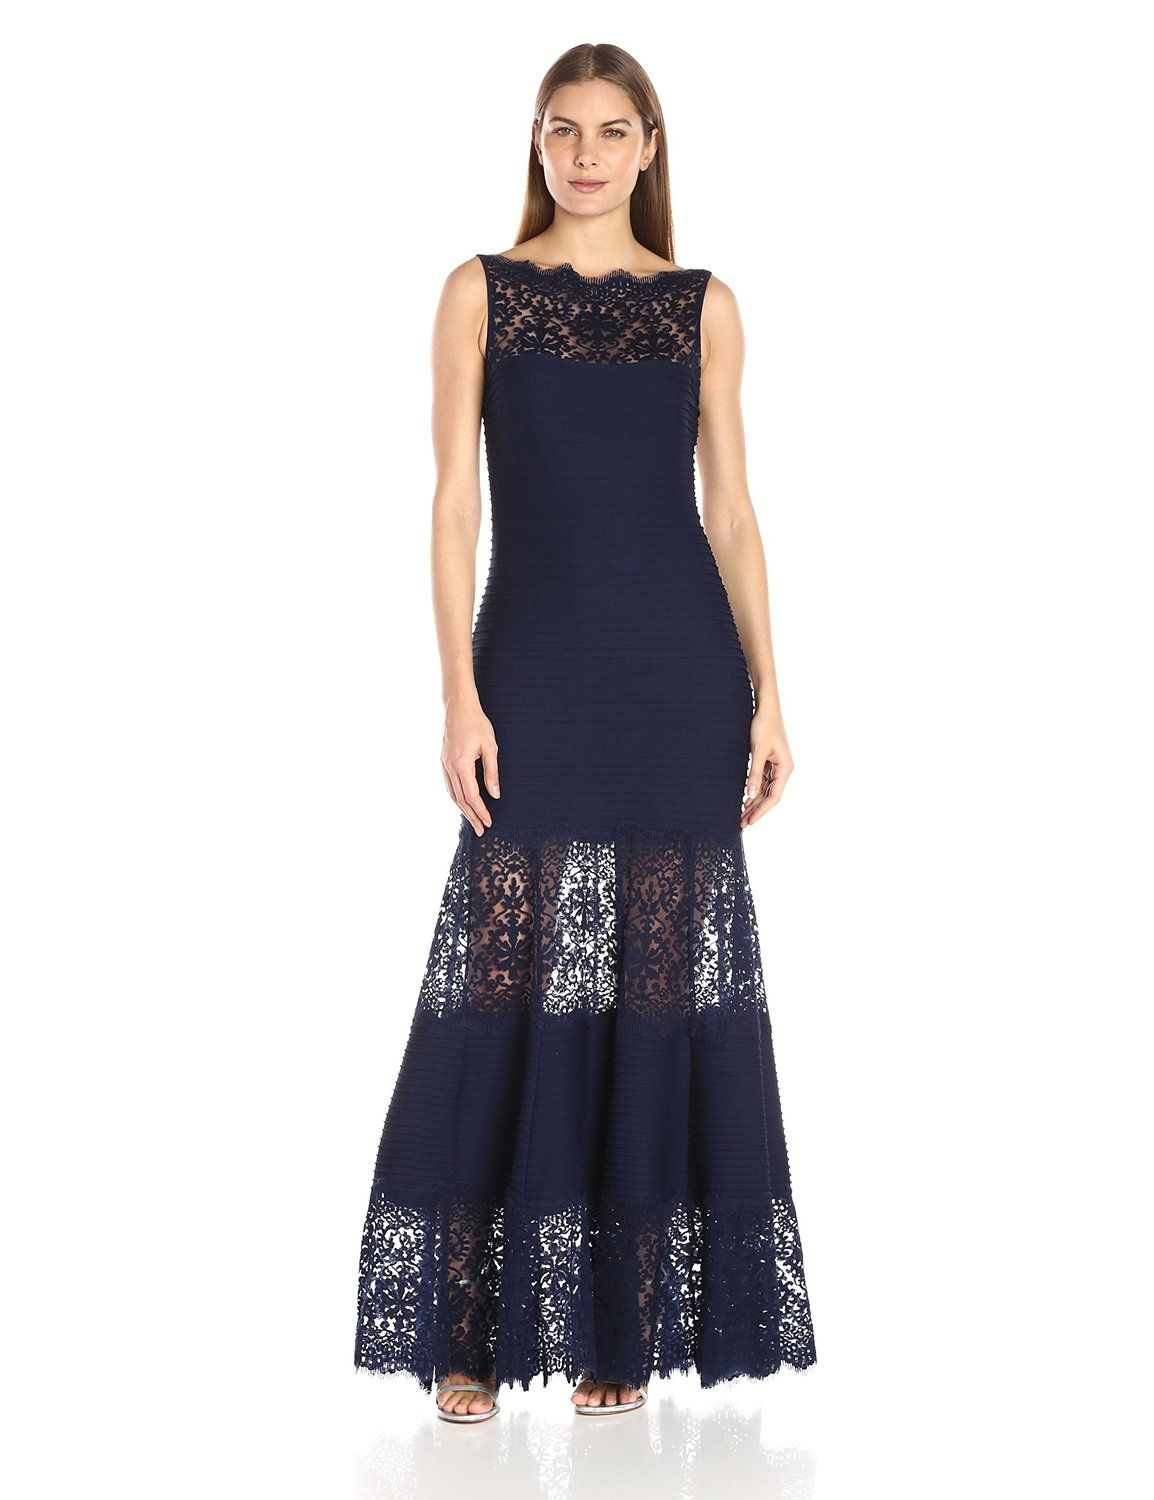 0b6b630f218 Amazon.com  Tadashi Shoji Women s Pintucked Jersey Gown with Lace Illusion  Neck  Clothing